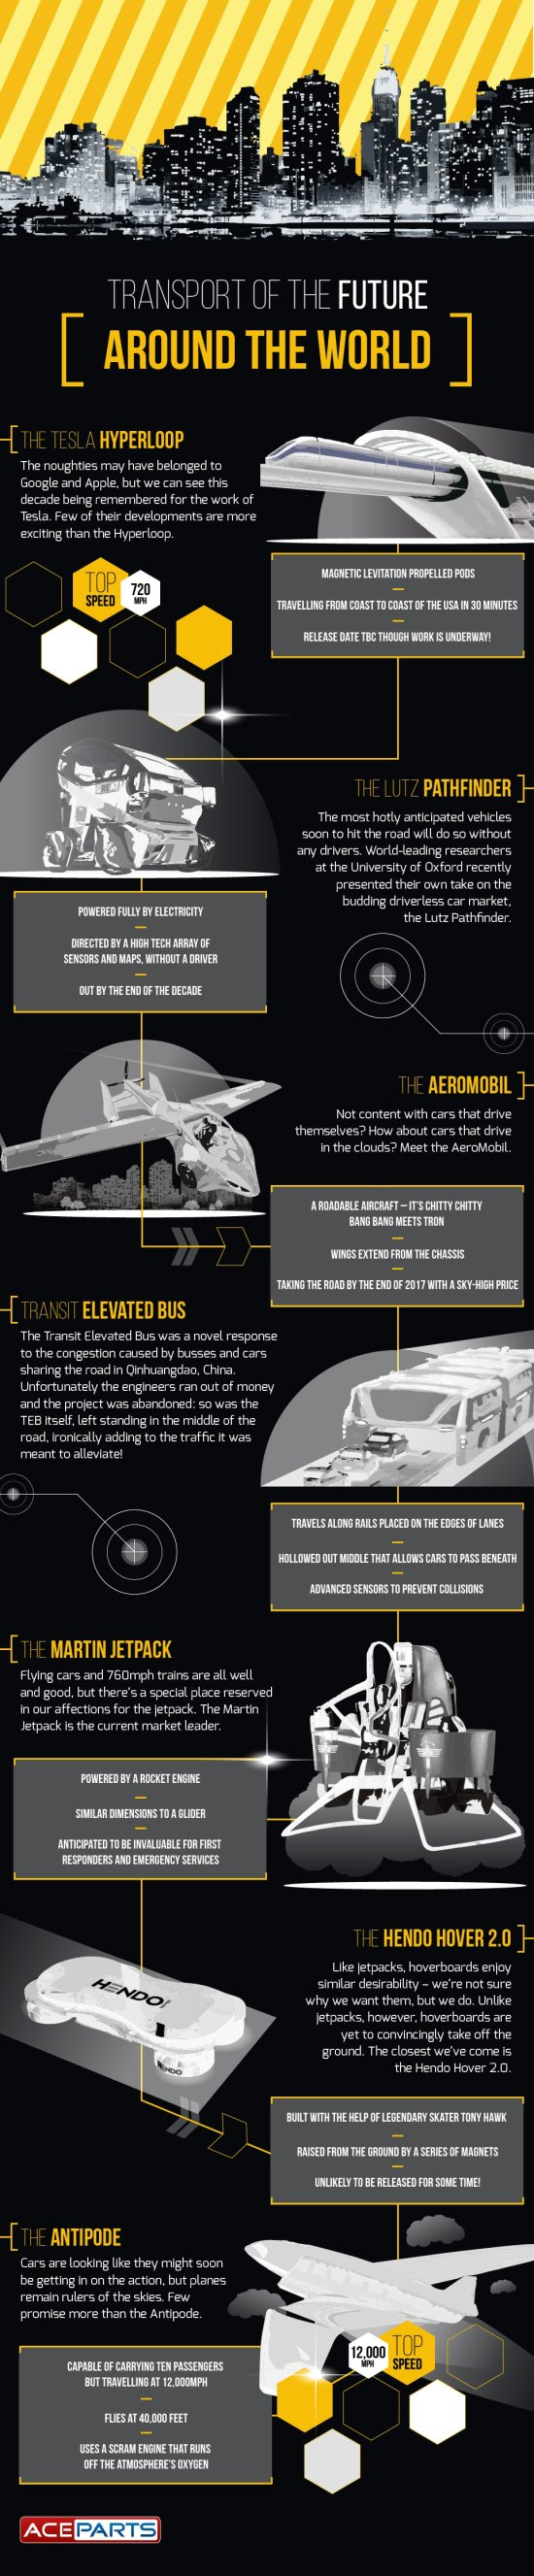 Transport of the future around the world picture